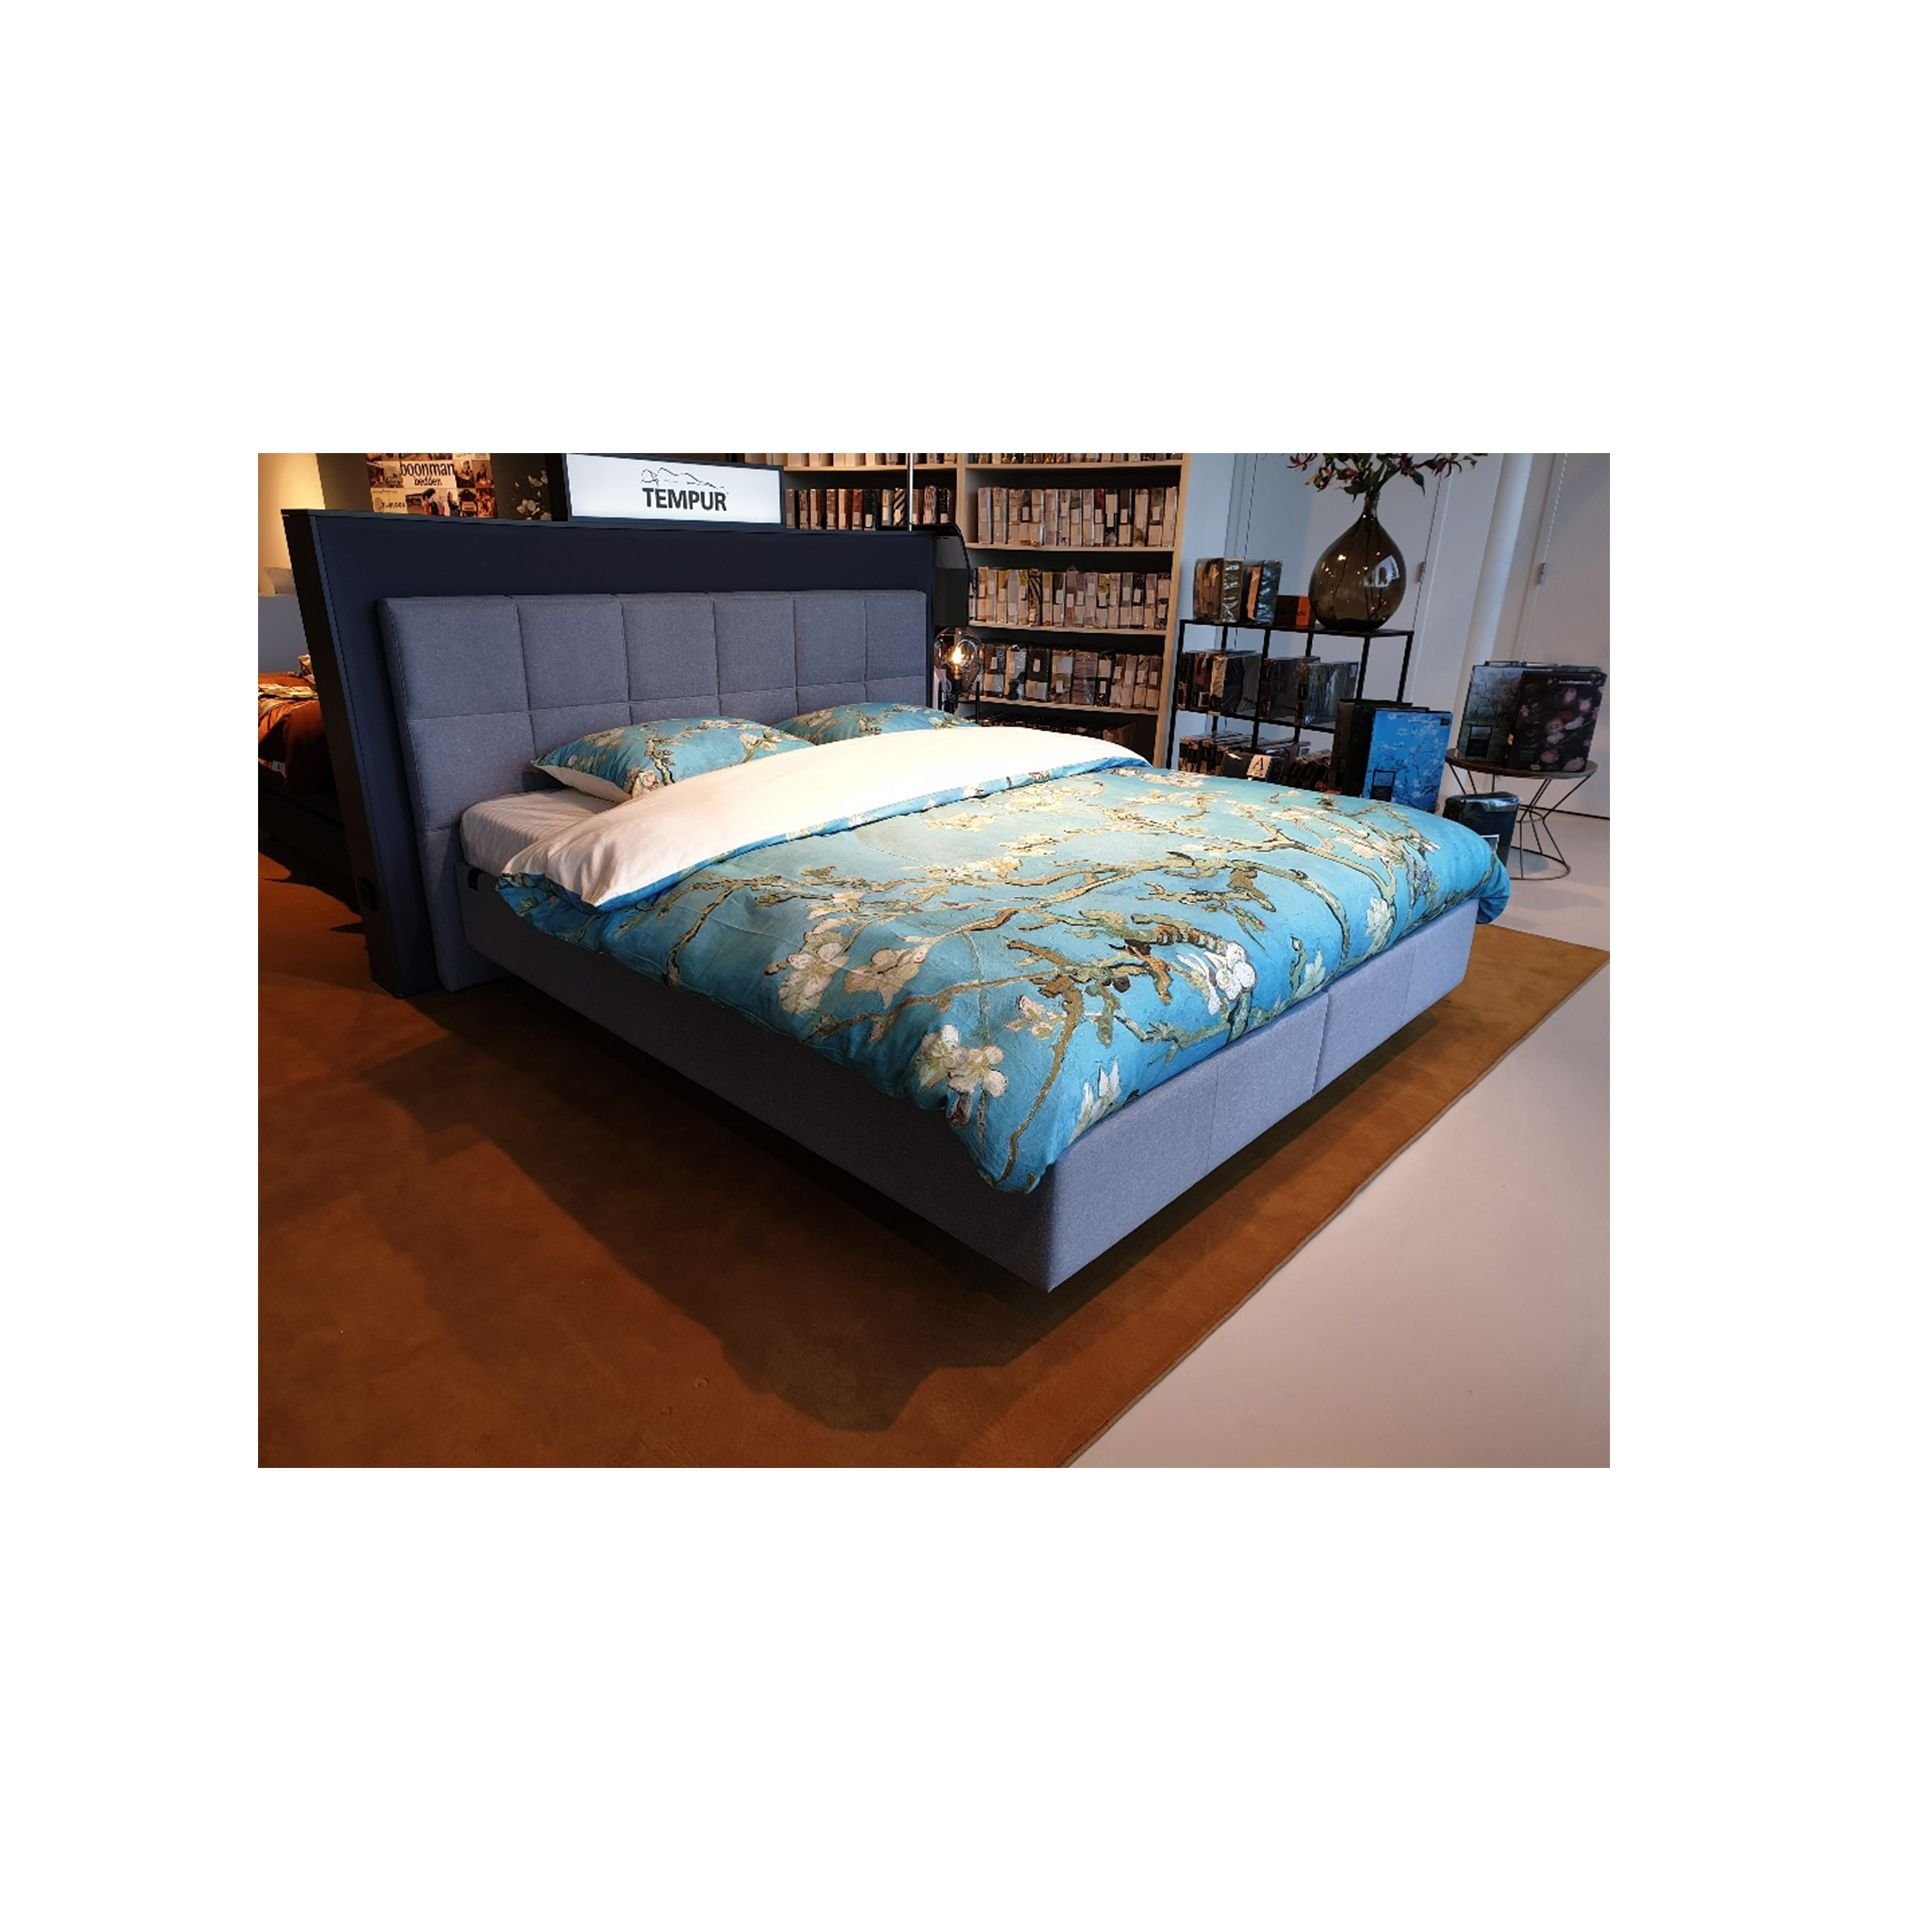 Tempur Relax bed - Showroommodel